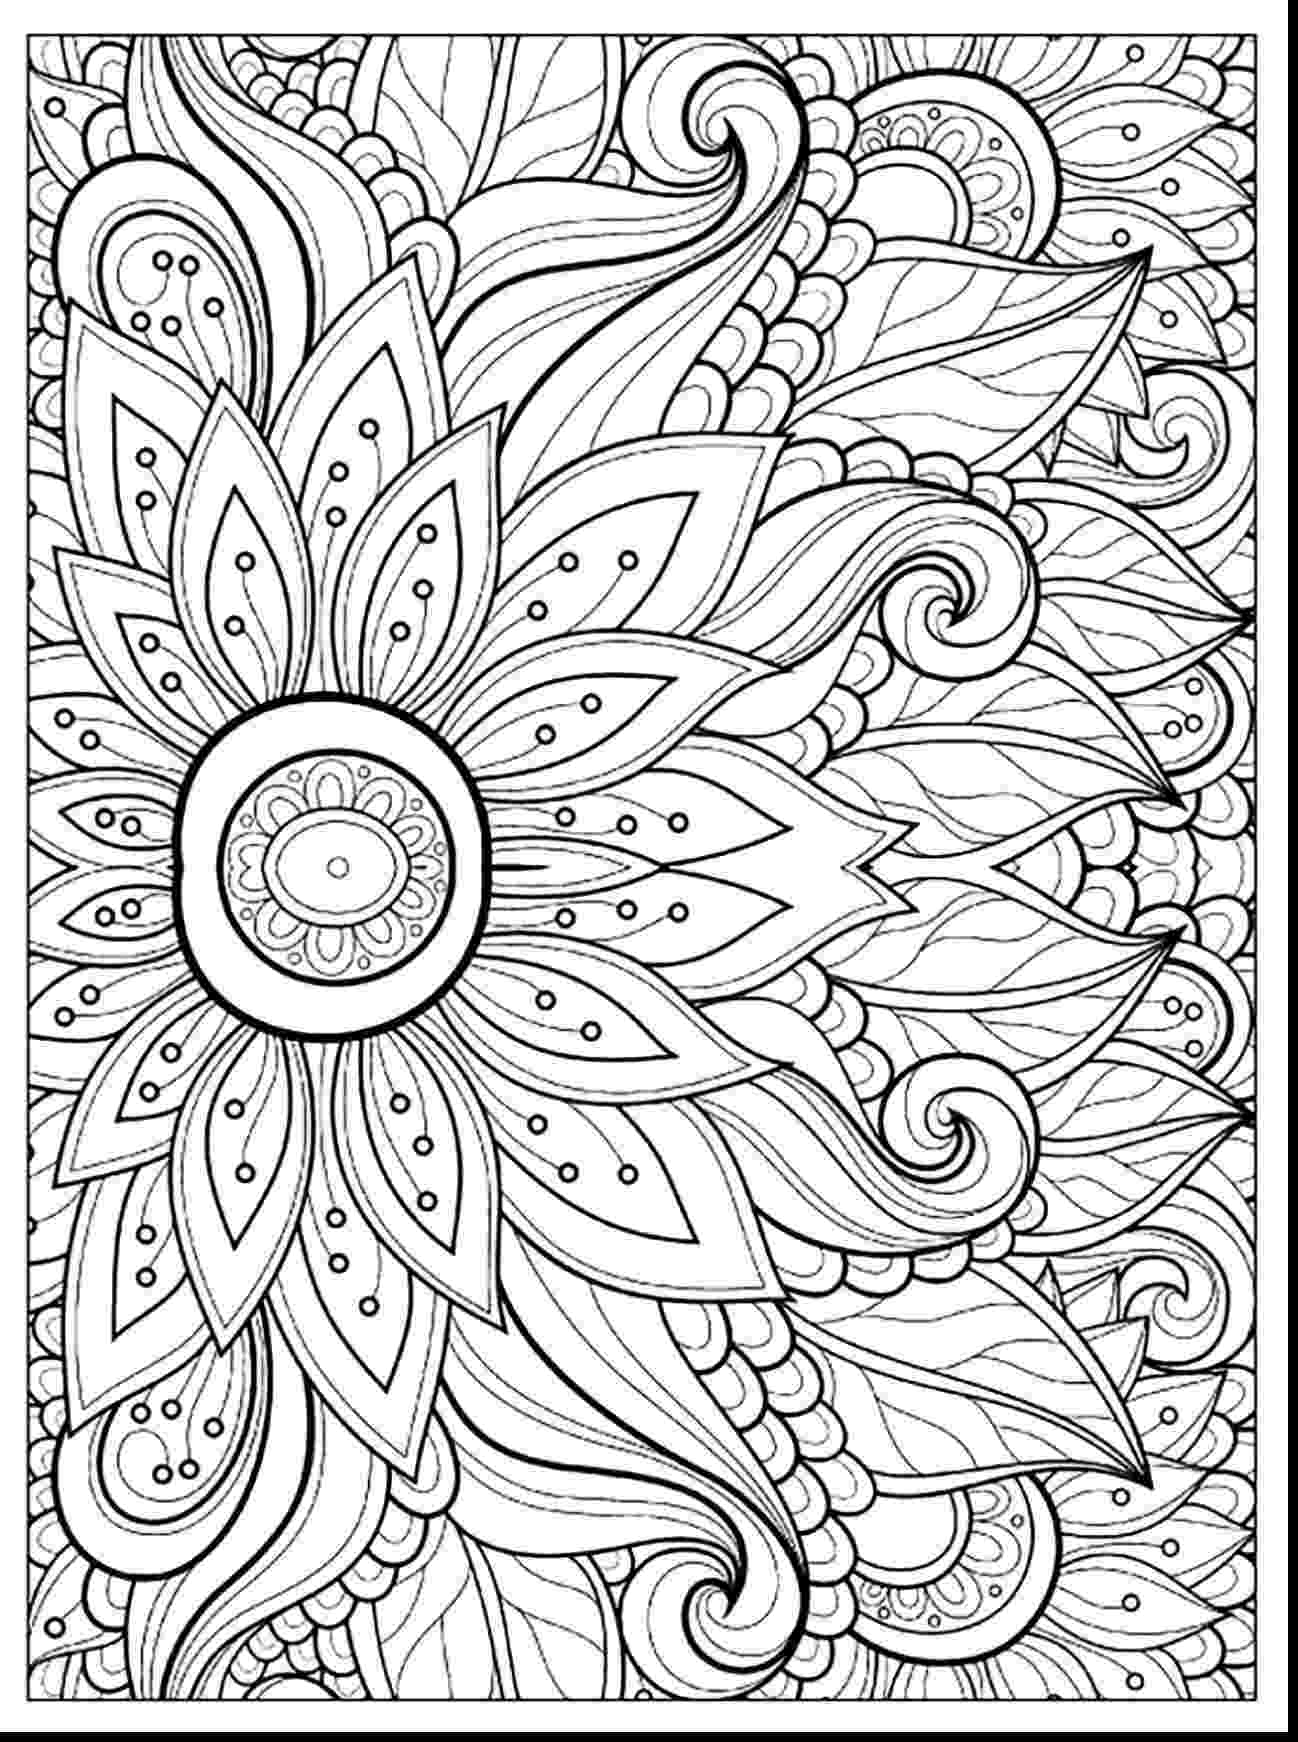 coloring pages pdf adult coloring pages free pdf to print free coloring books pages pdf coloring